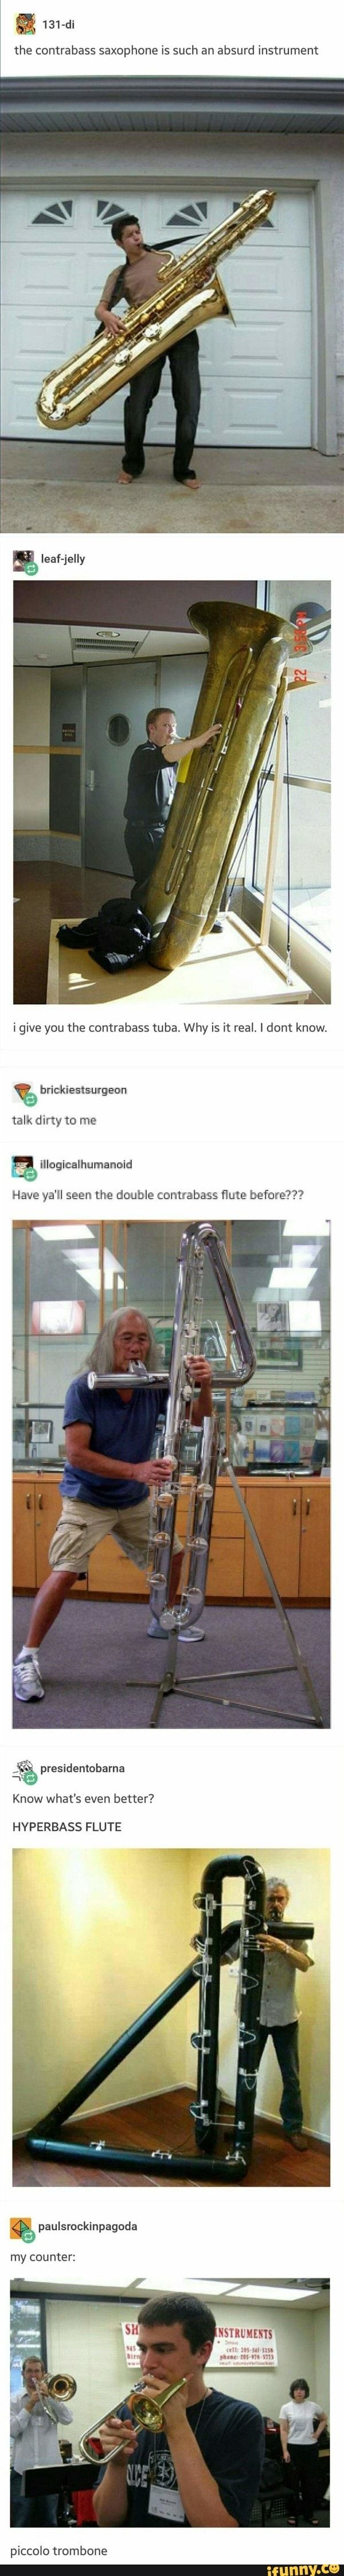 funny instruments